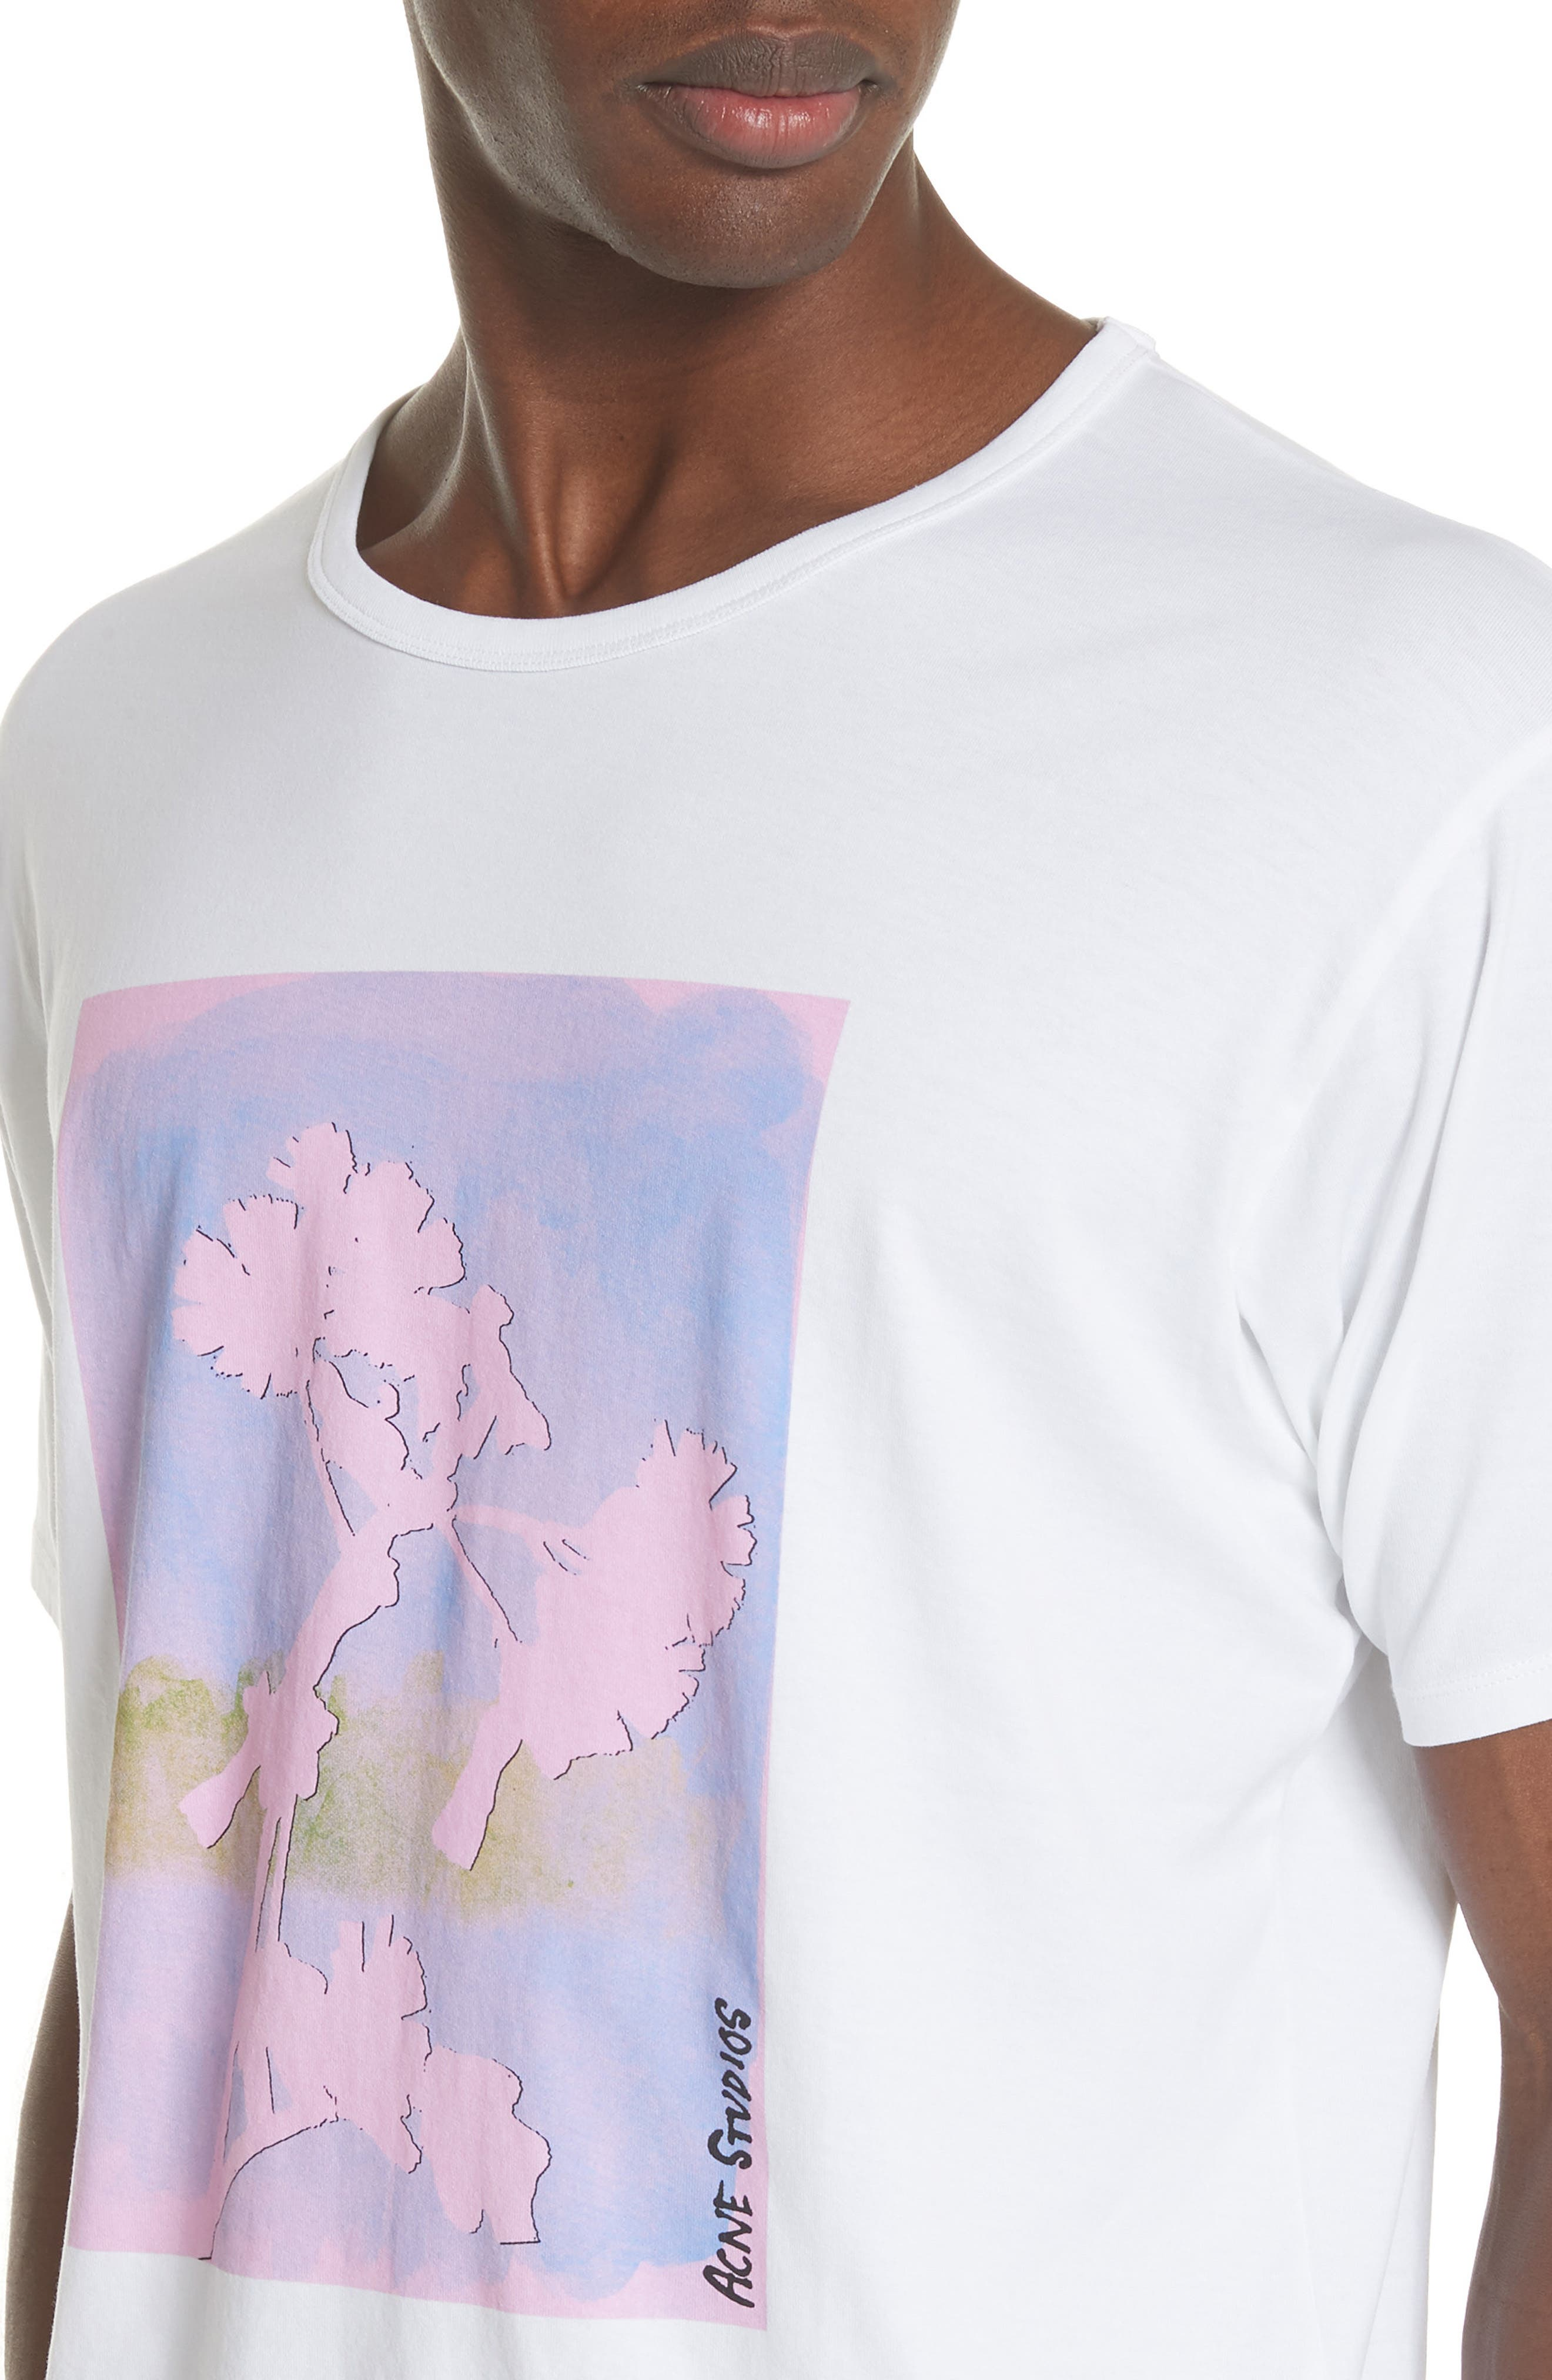 Niave Flower Graphic T-Shirt,                             Alternate thumbnail 4, color,                             Optic White